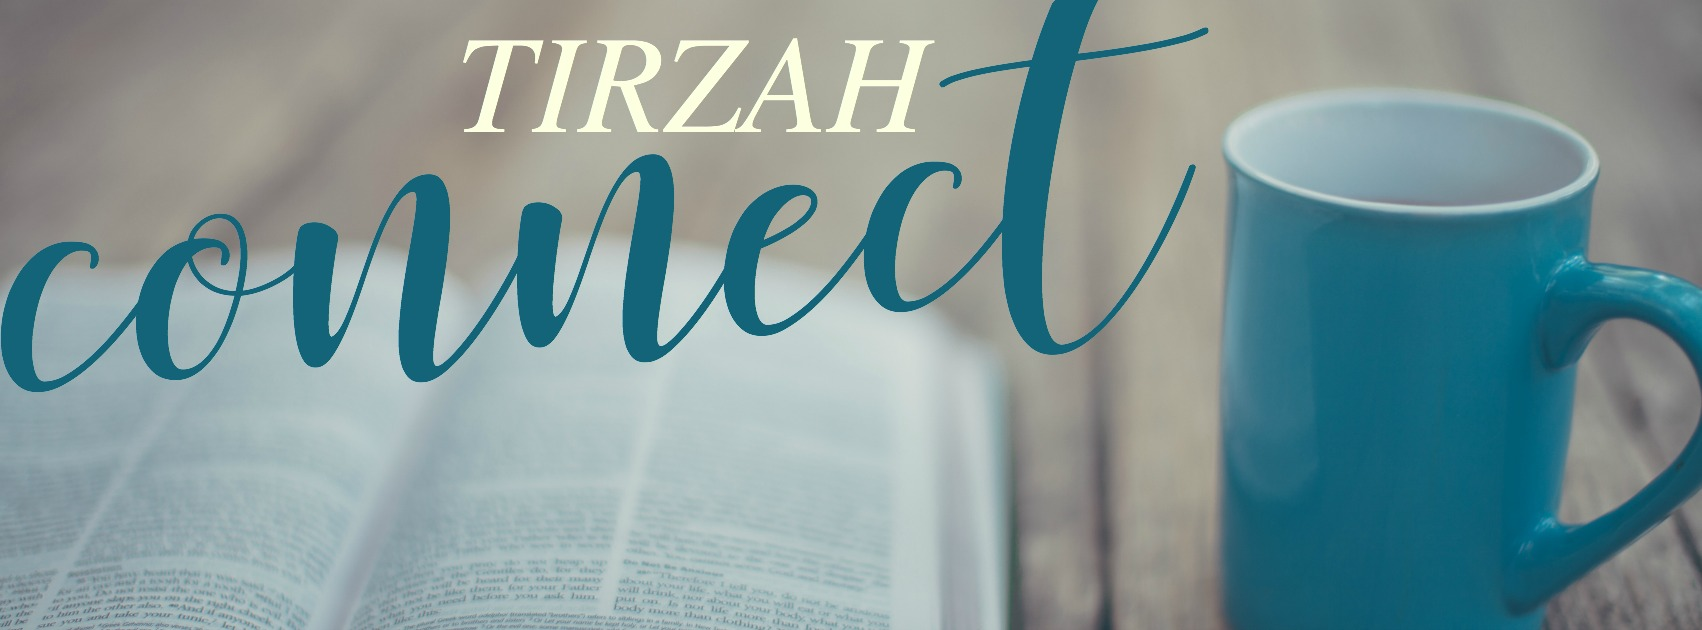 Tirzah Connect